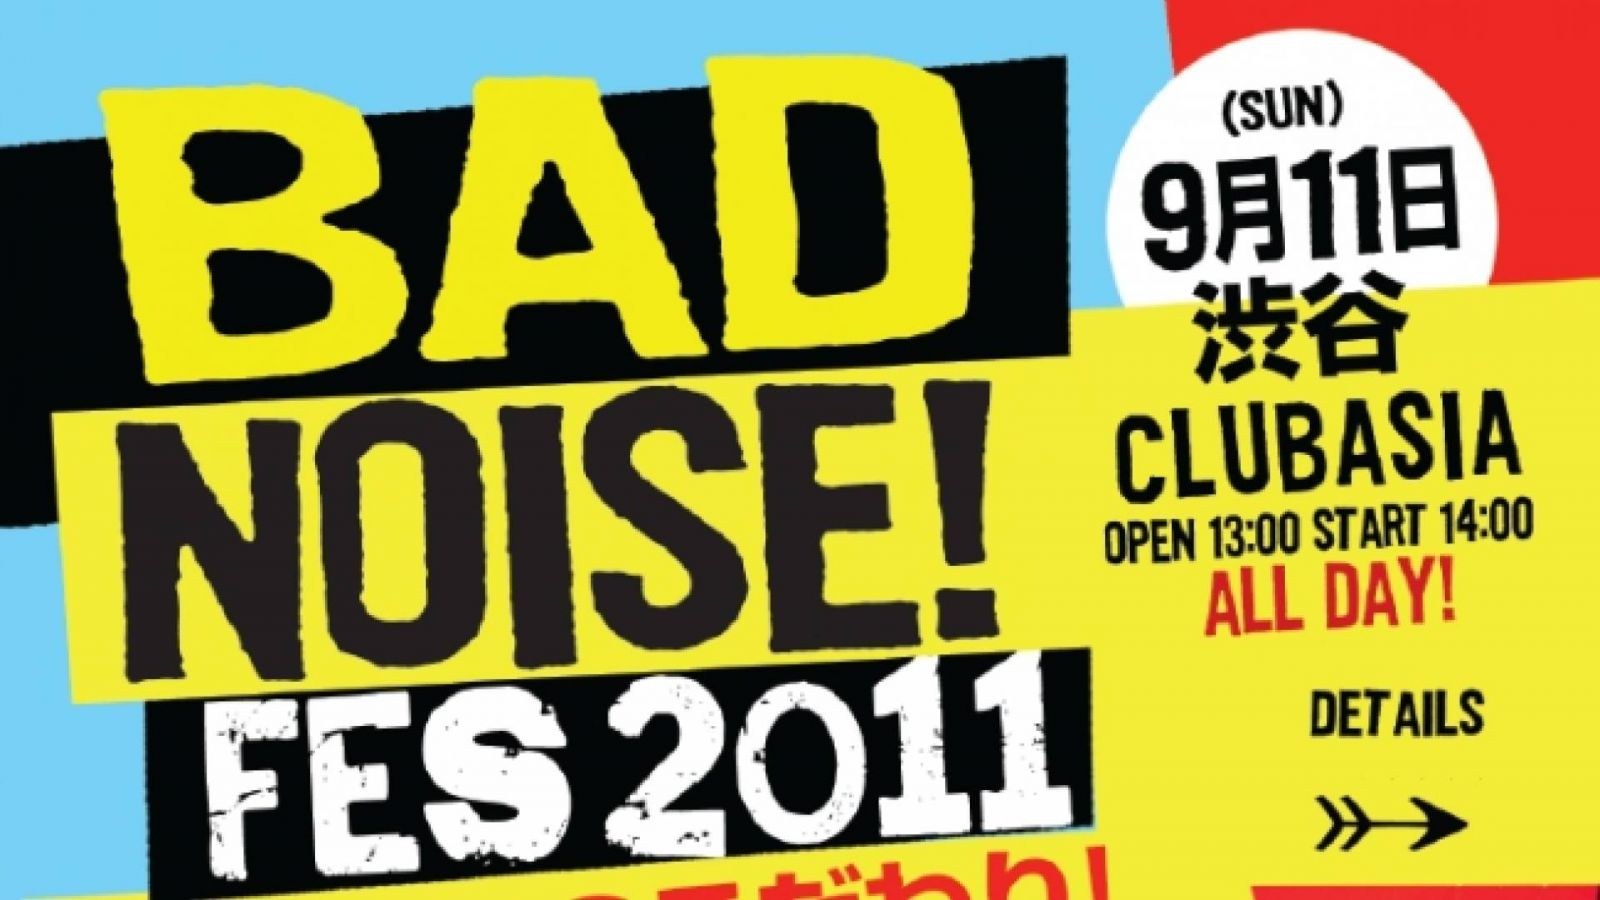 Bad Noise! Fes 2011 at Shibuya Club ASIA © Bad Noise